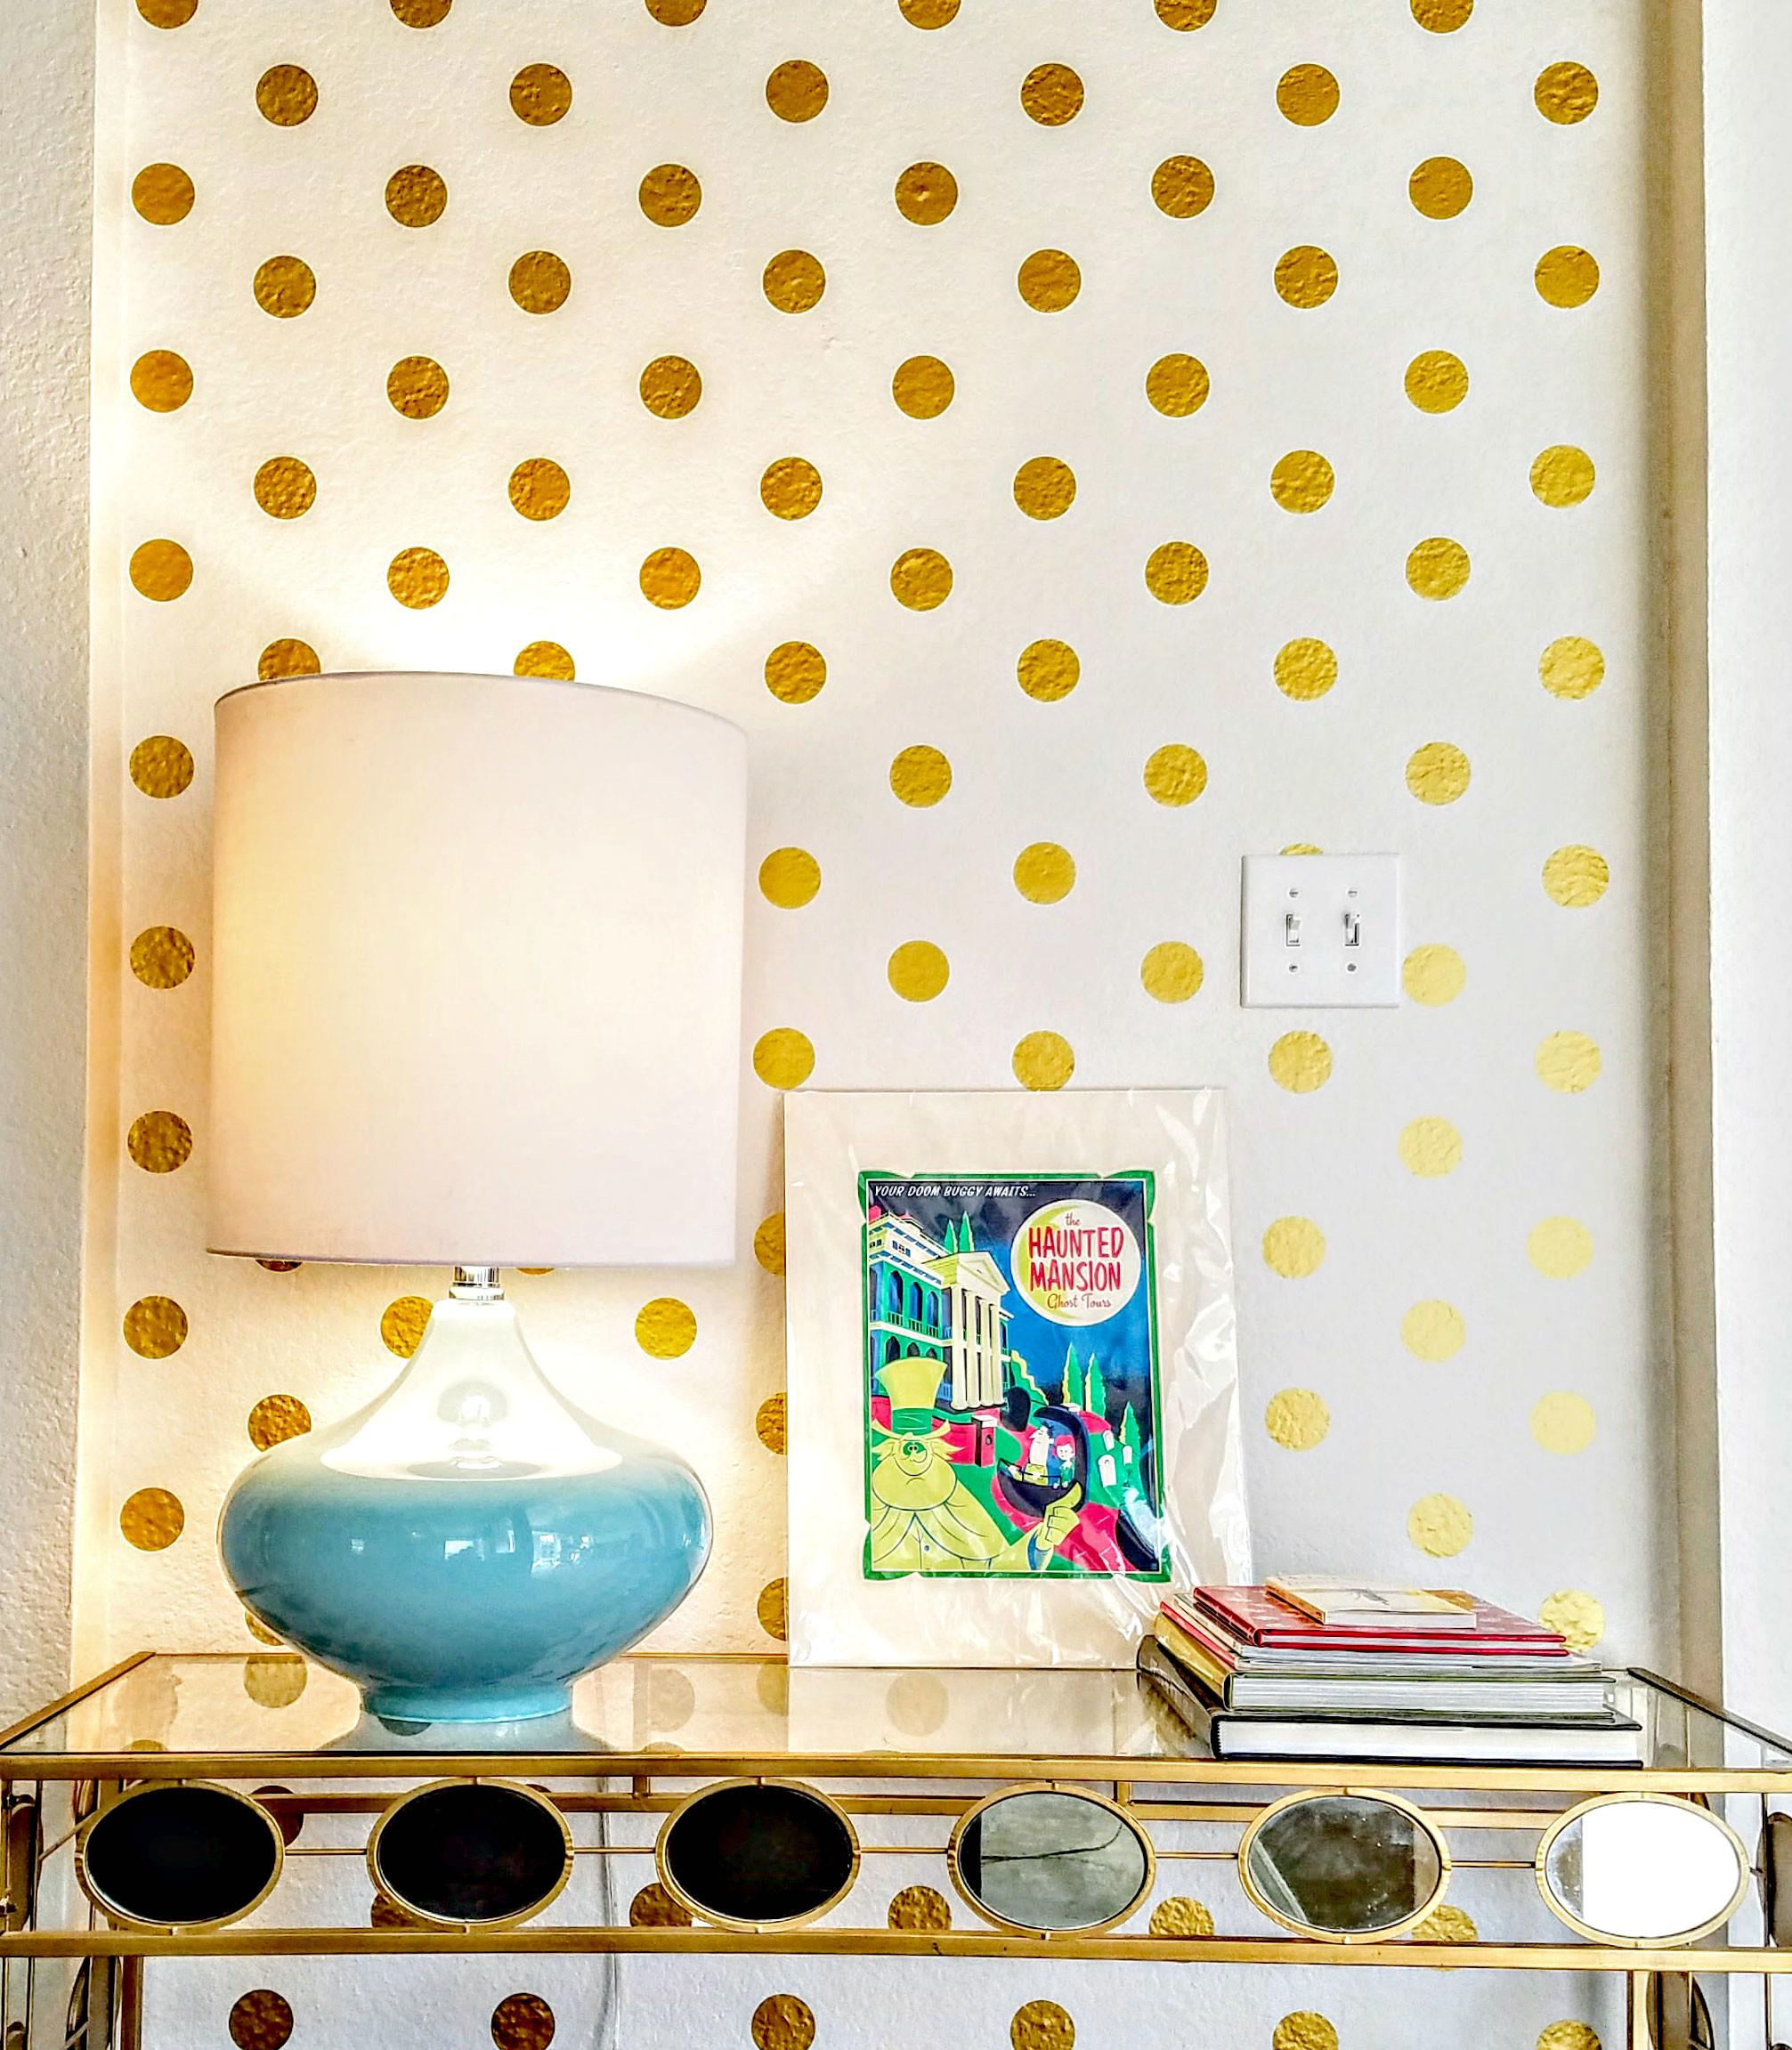 Diy Gold Polka Dot Wall Glowing Charm Home